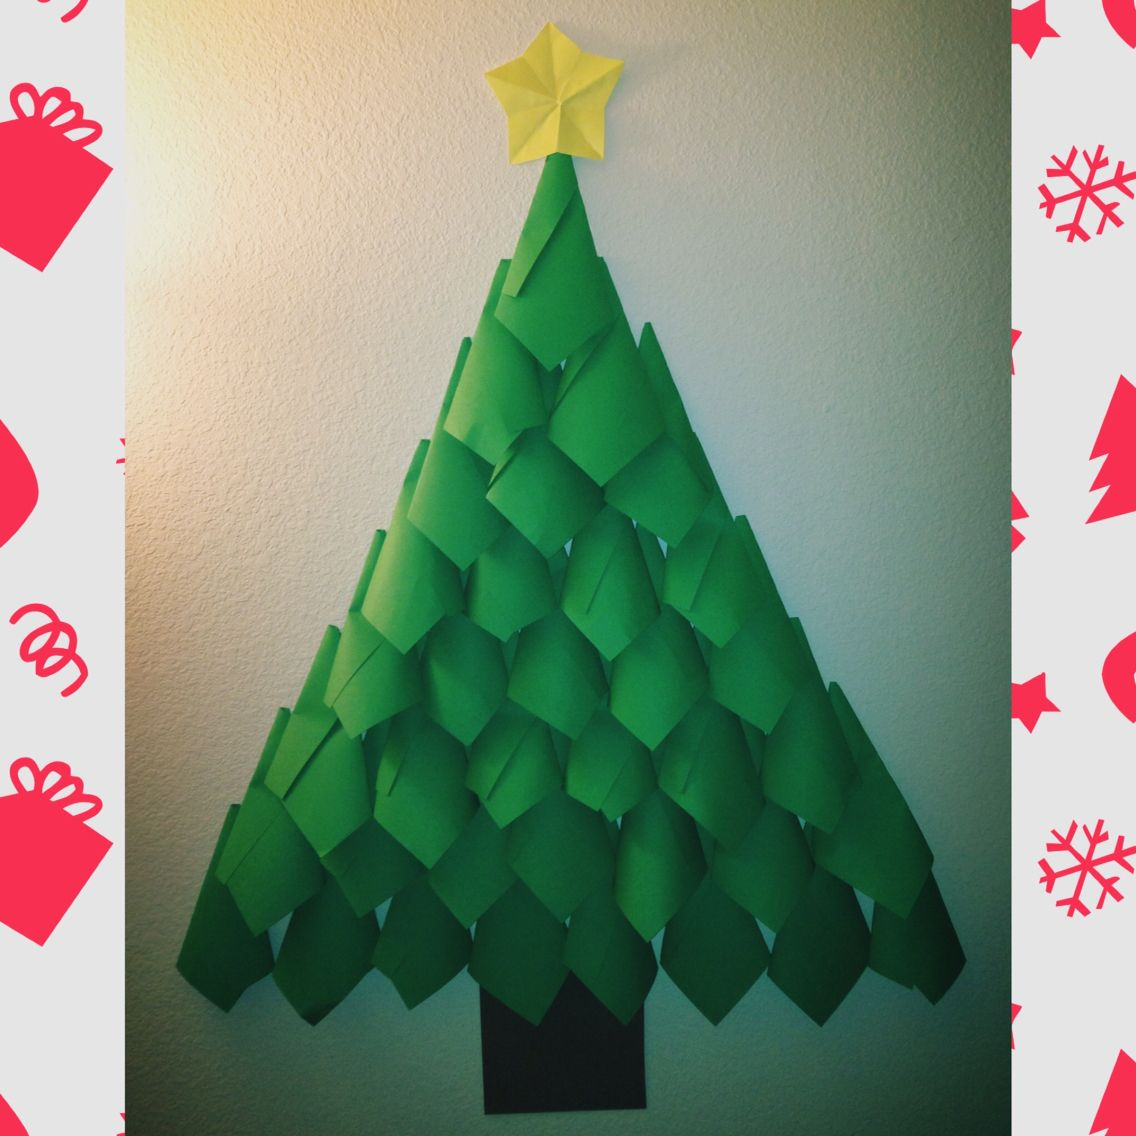 Newspaper Christmas Tree: Made A Christmas Tree Completely Out Of Construction Paper